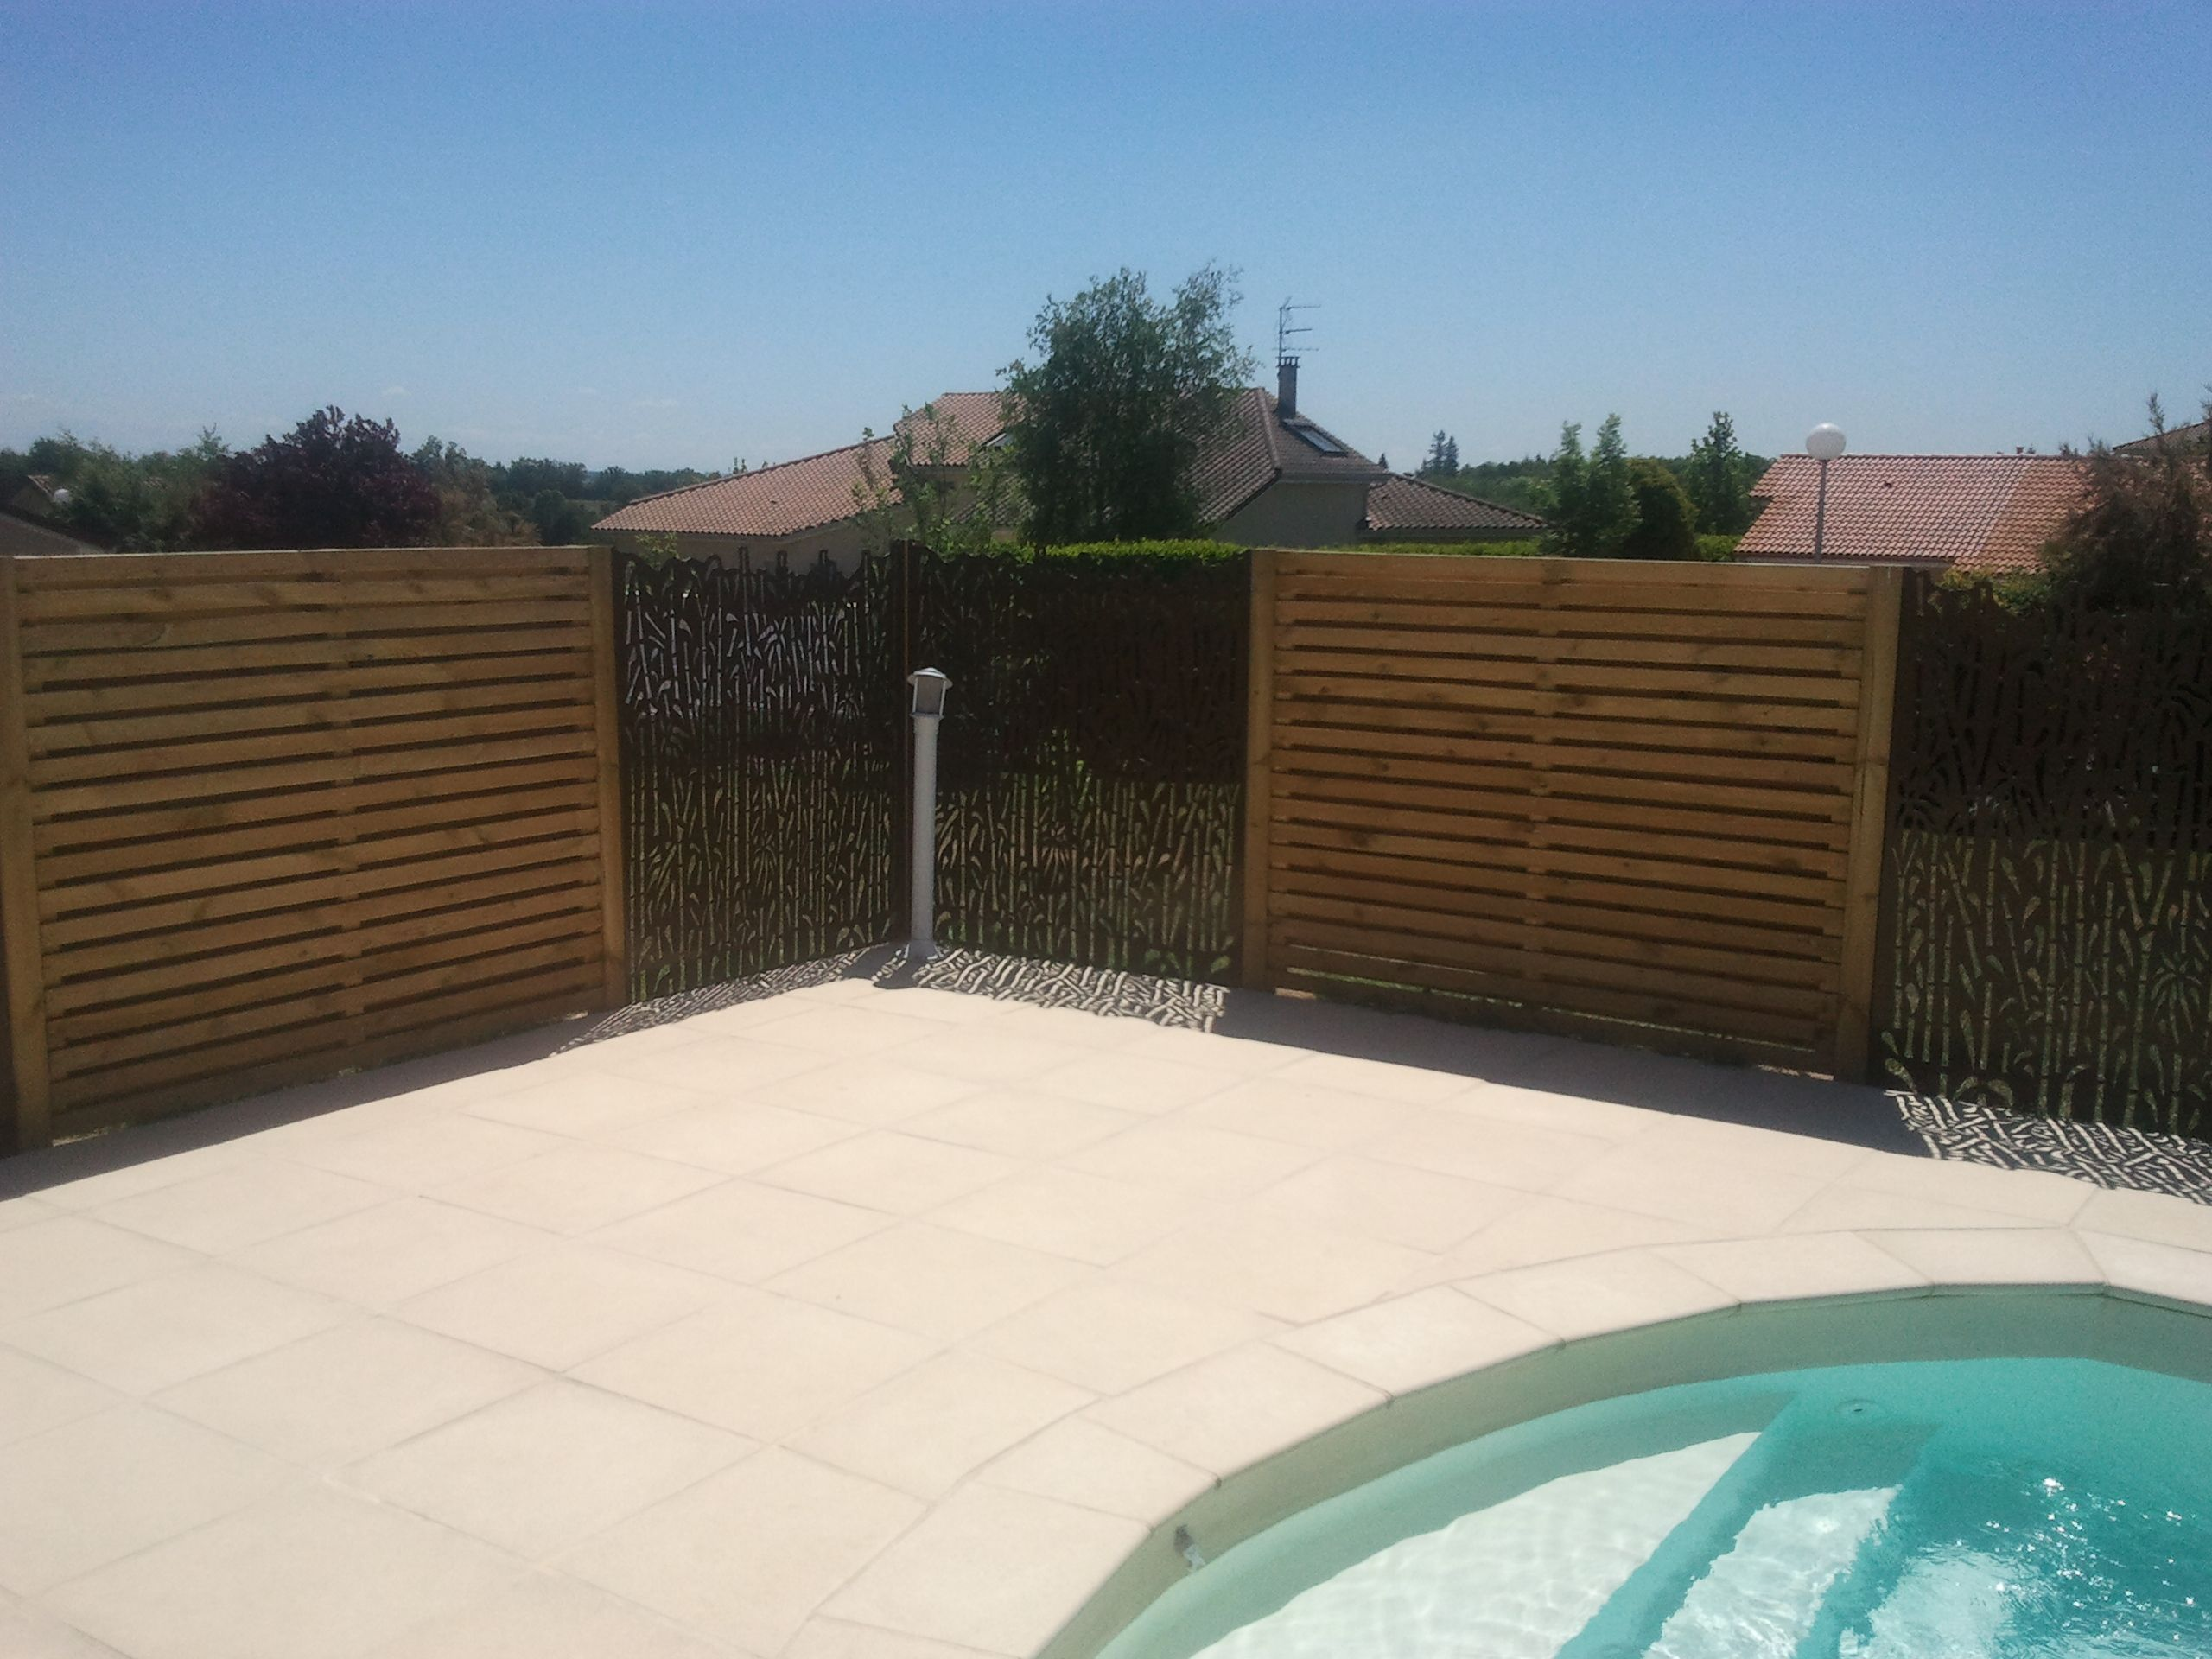 Rebeyrol rebeyrol cr ateur de jardins am nagement de for Amenagement jardin brise vue